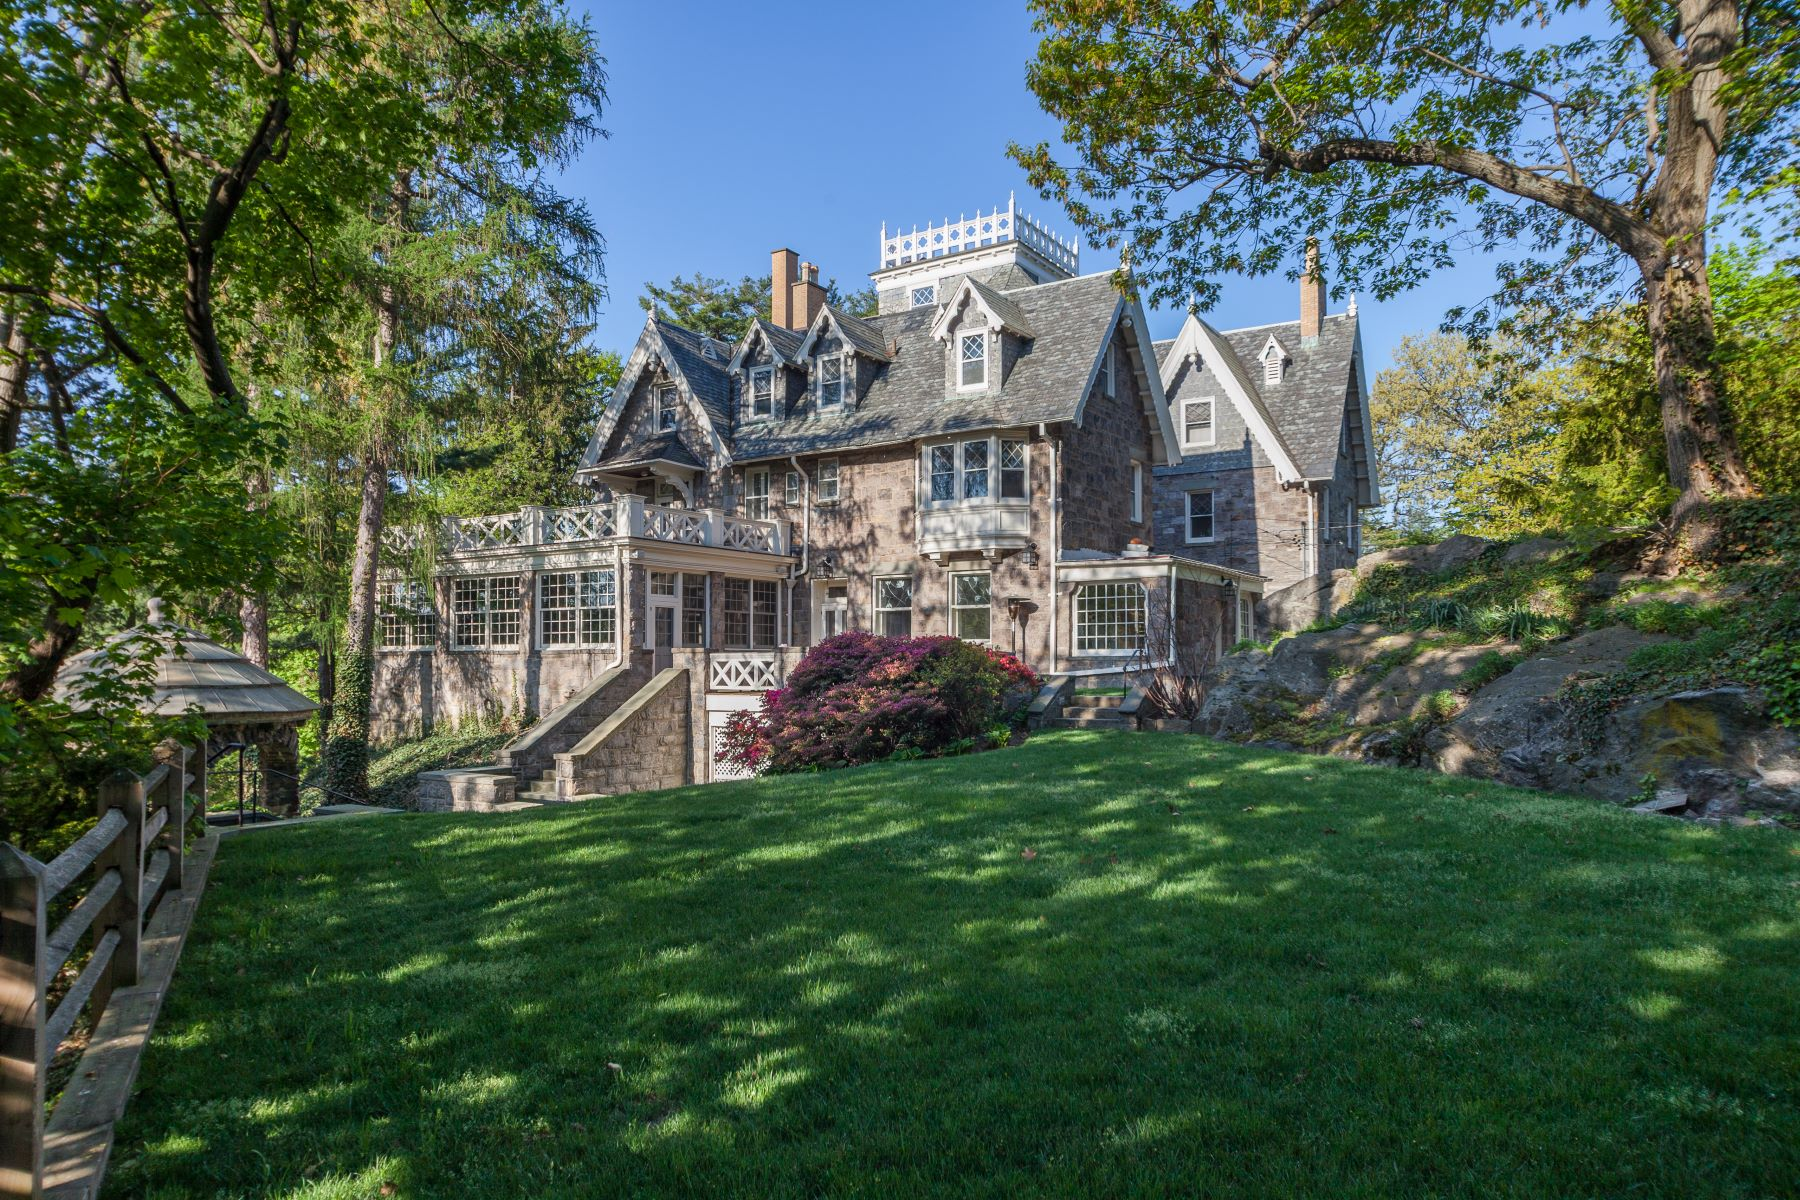 Maison unifamiliale pour l Vente à Magnificent Village Estate 50 Crows Nest Road Bronxville, New York 10708 États-Unis